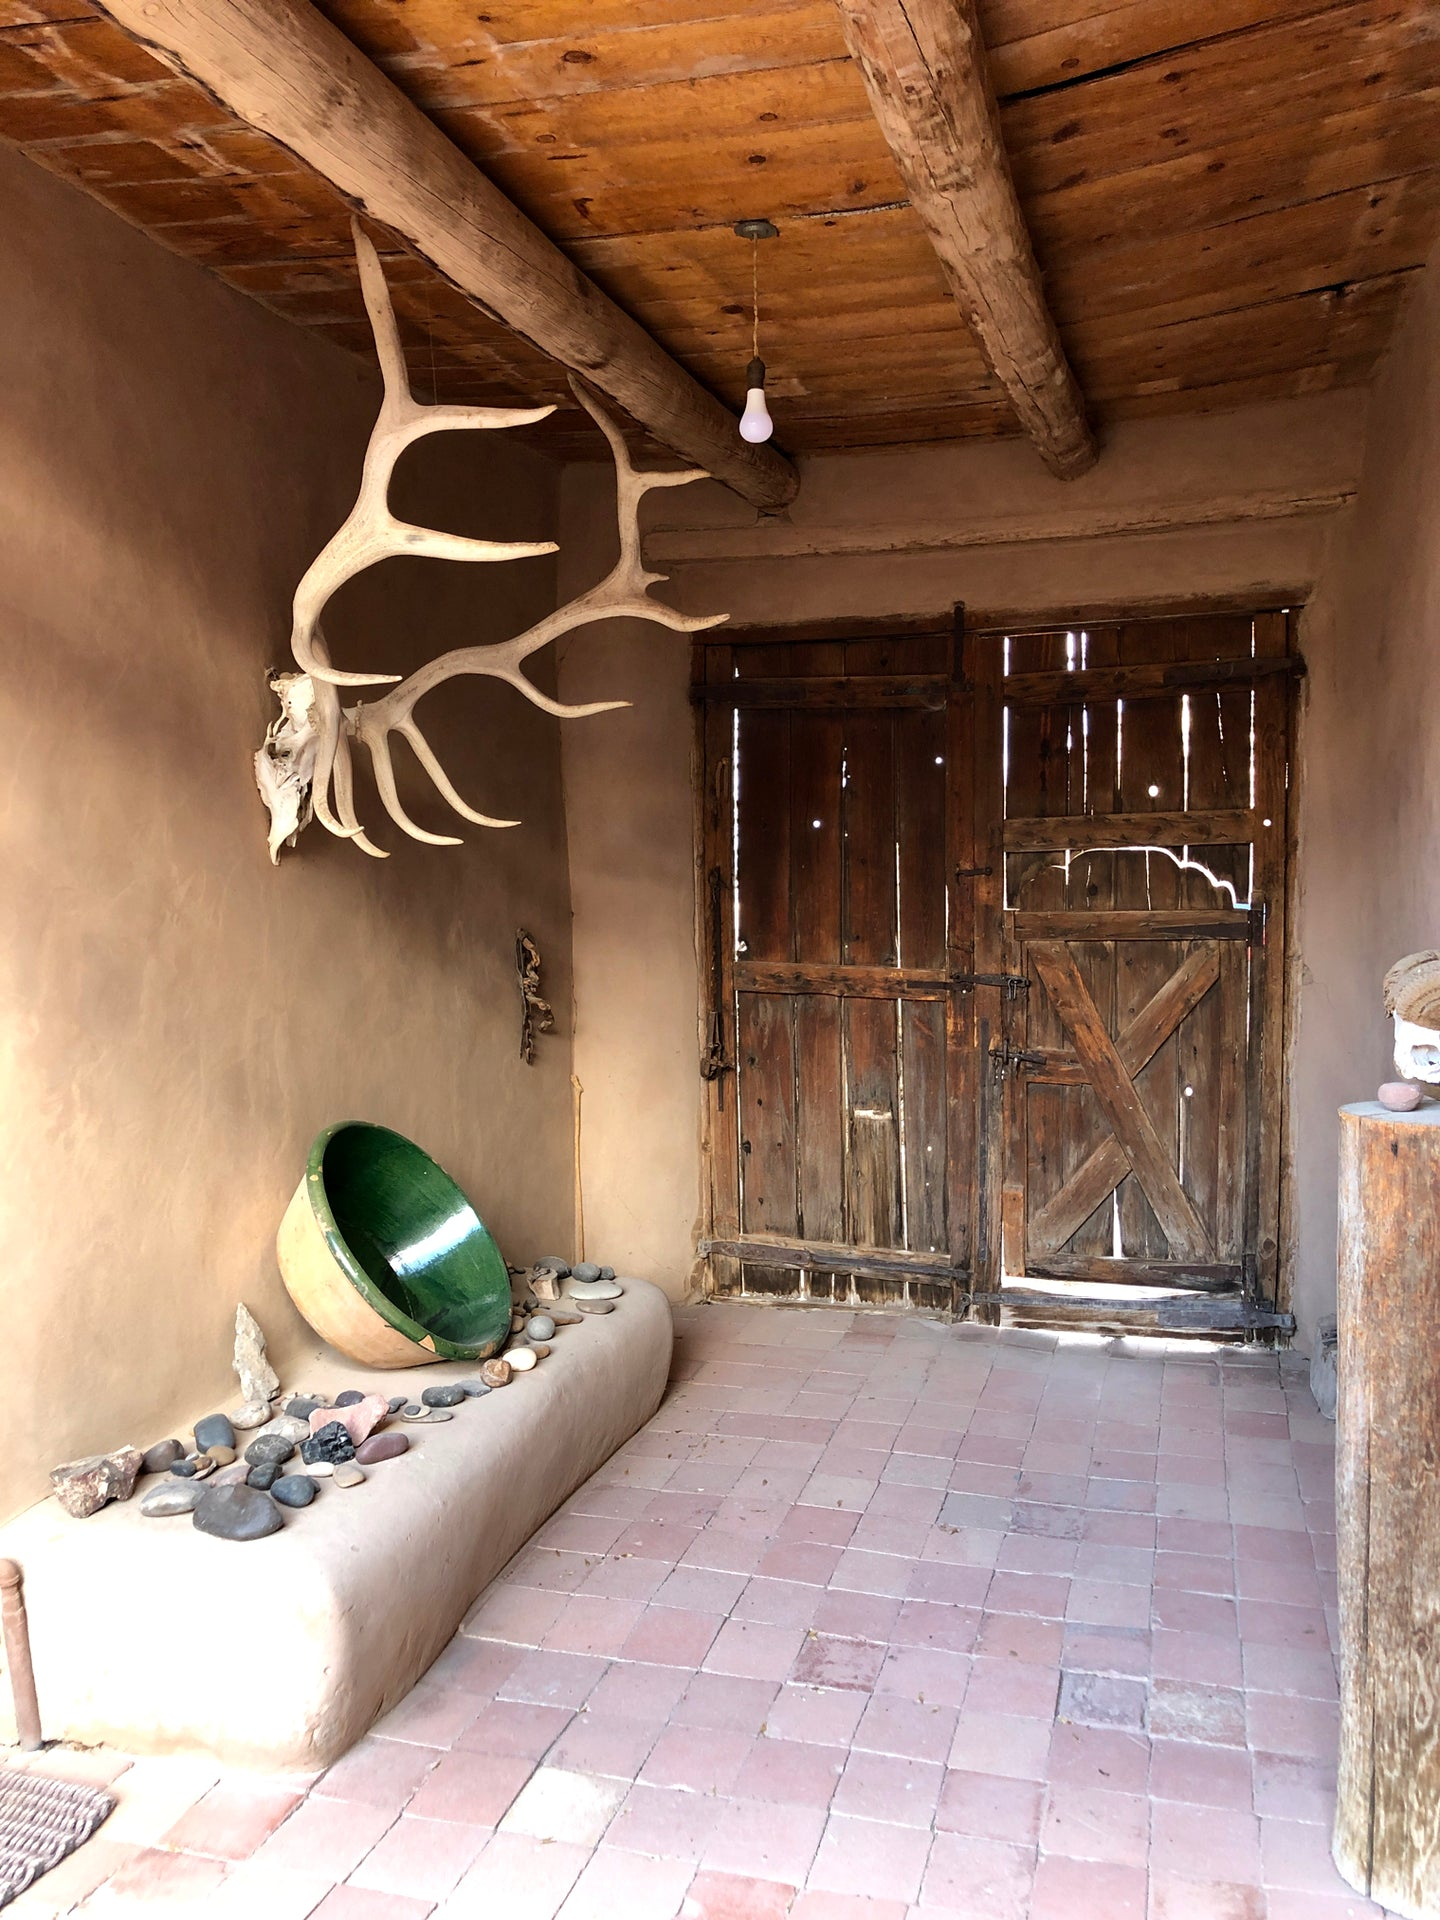 THE ICONIC O'KEEFFE ANTLERS